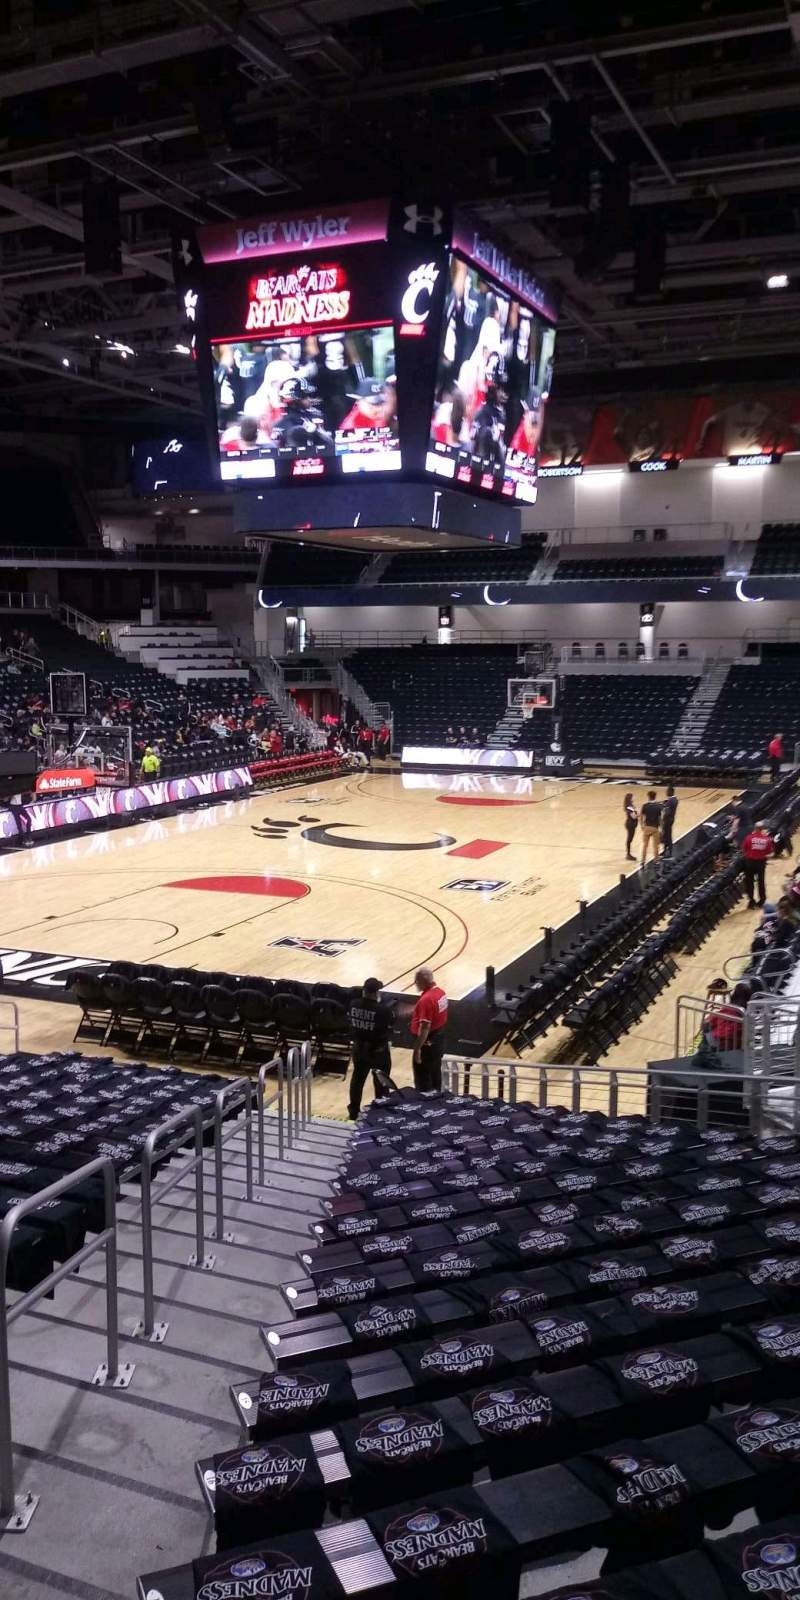 Seating view for Fifth Third Arena Section 108 Row 22 Seat 13